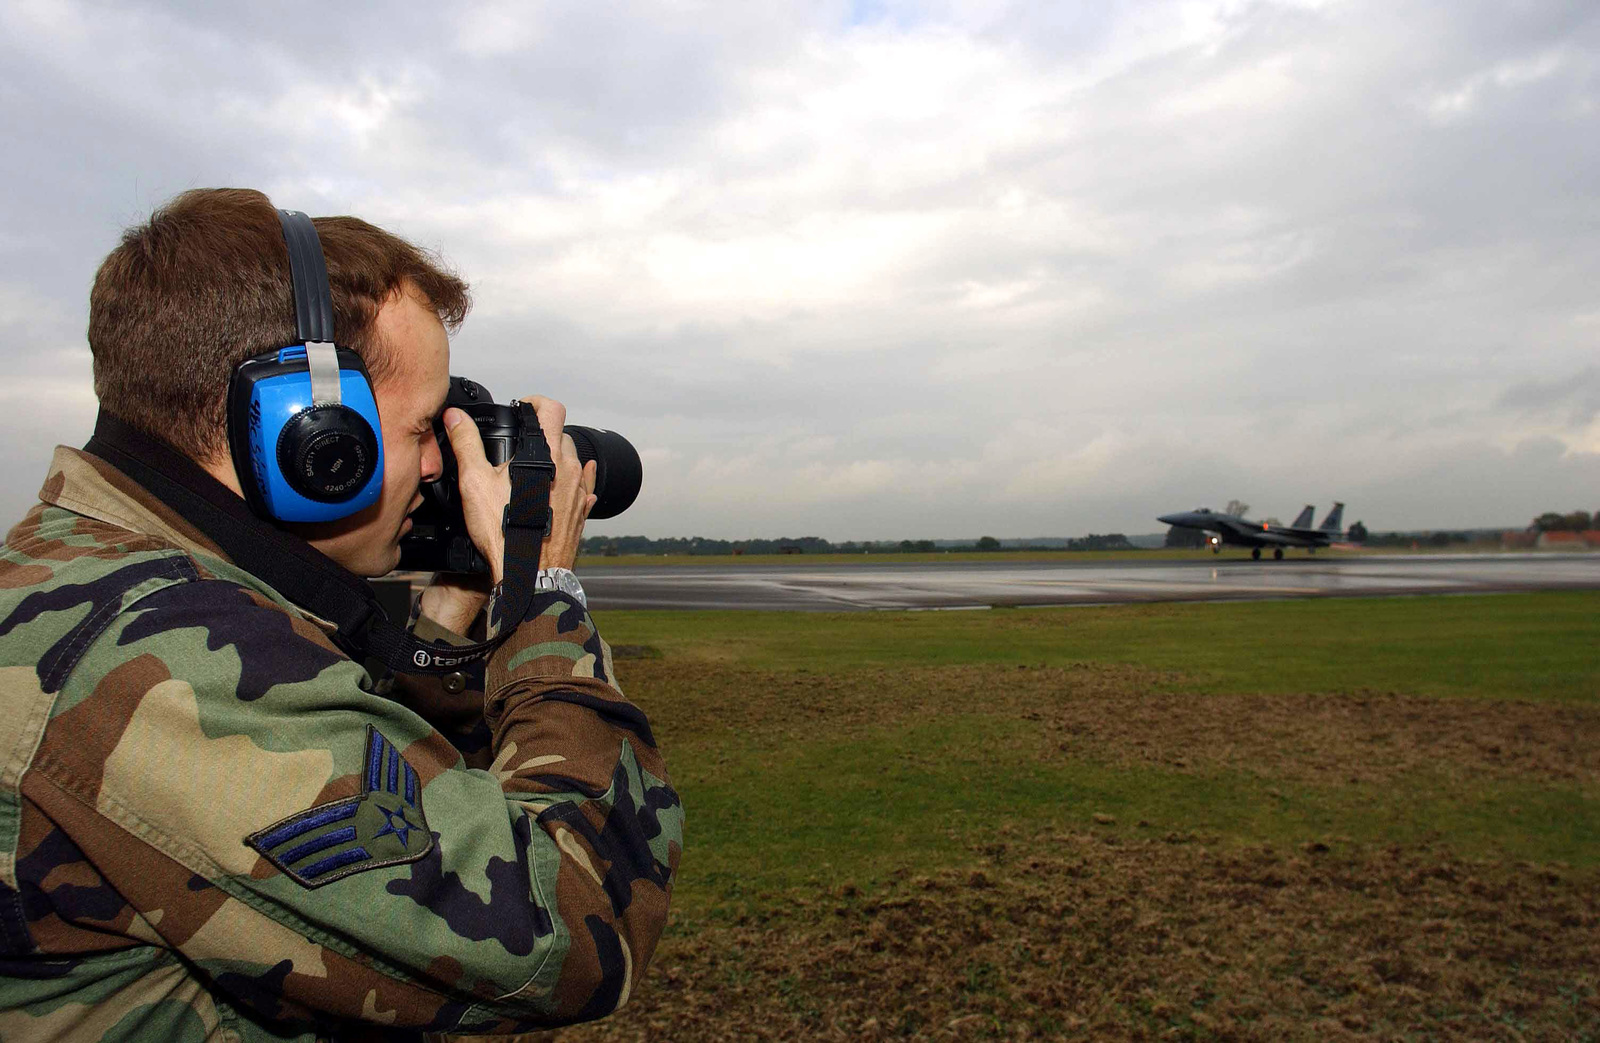 US Air Force (USAF) SENIOR AIRMAN (SRA) James Harper, a 48th Communications Squadron (CS) photographer, assigned to Royal Air Force (RAF) Lakenheath, England, documents flight operations on the runway as a 493rd Fighter Squadron (FS) F-15C Eagle takes off